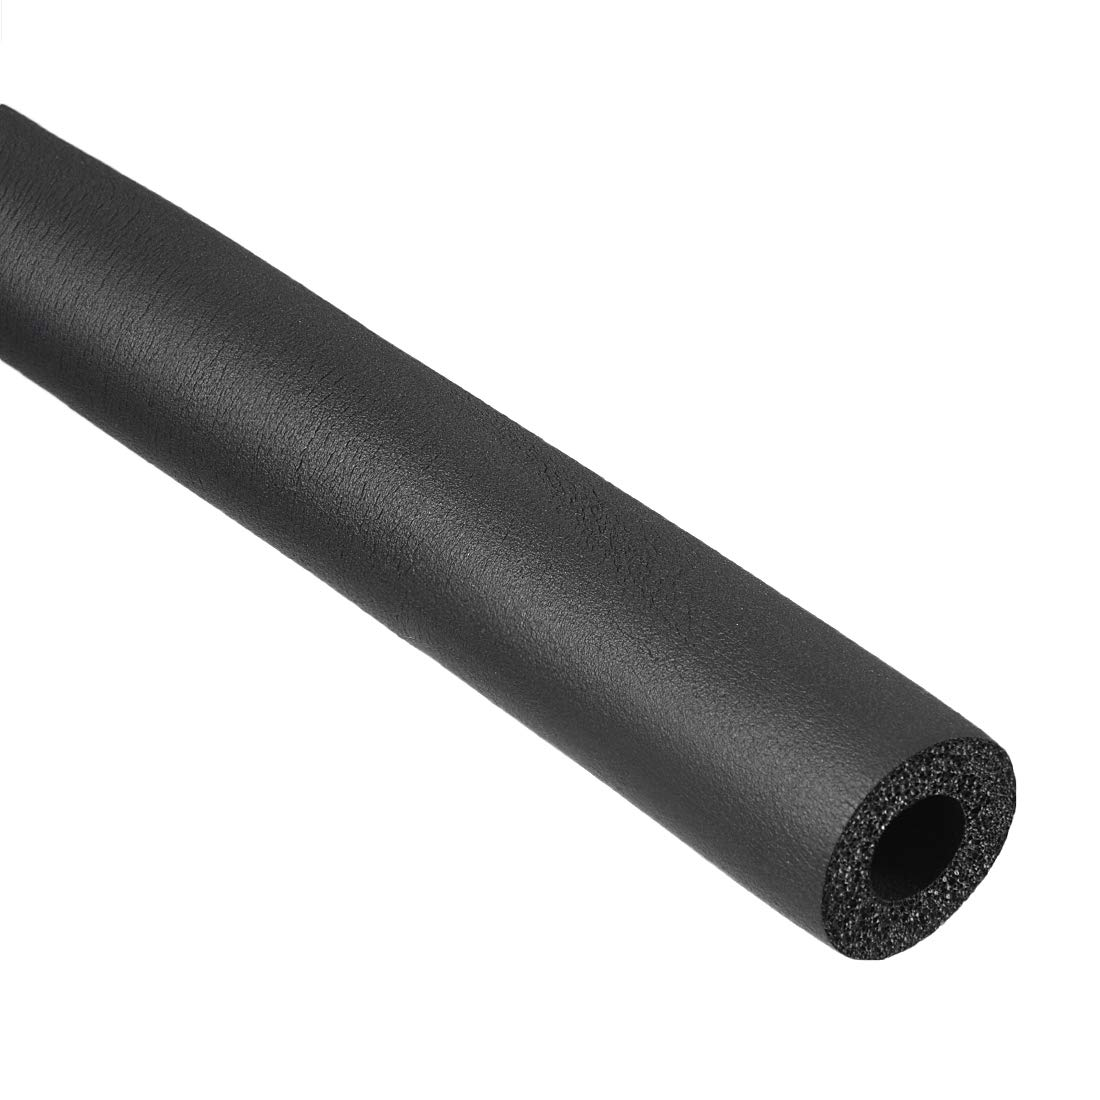 uxcell/® uxcellBlack Flexible Insulation Air Conditioner Pipe Hose 6x9mm 1.8m Length